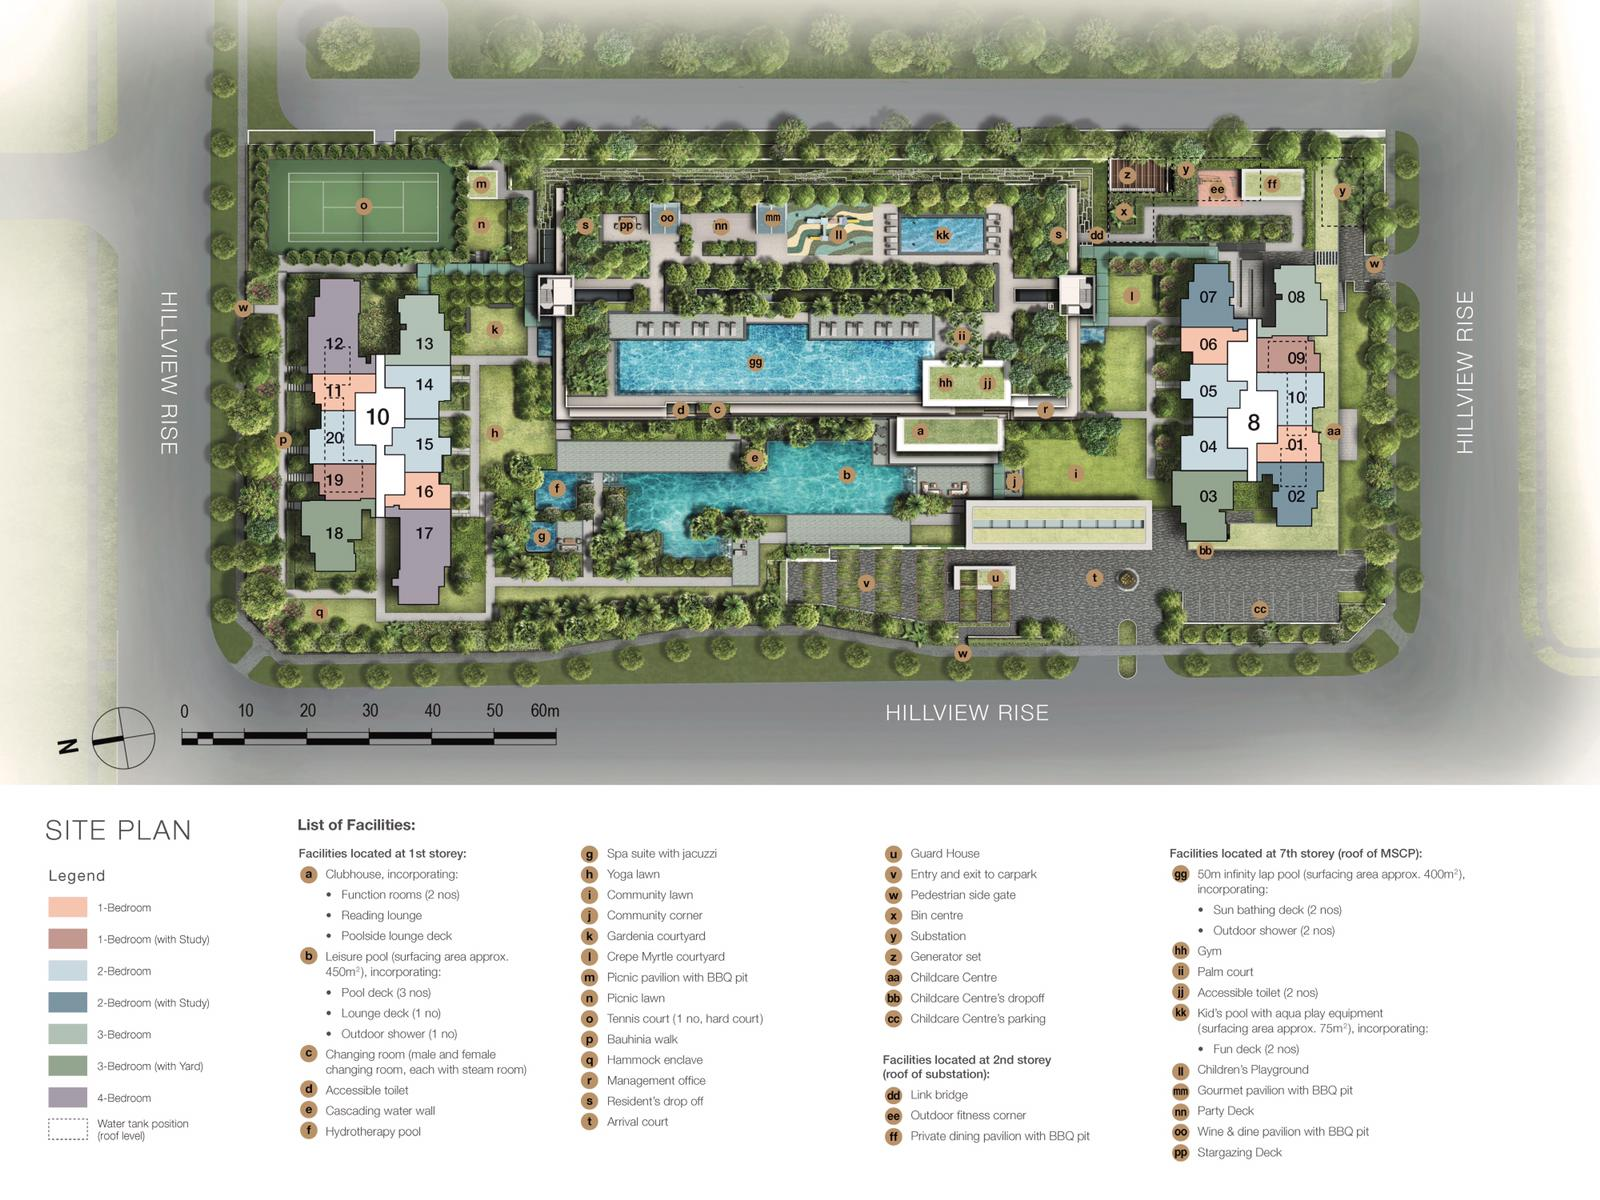 Midwood-hillview-Site Plan